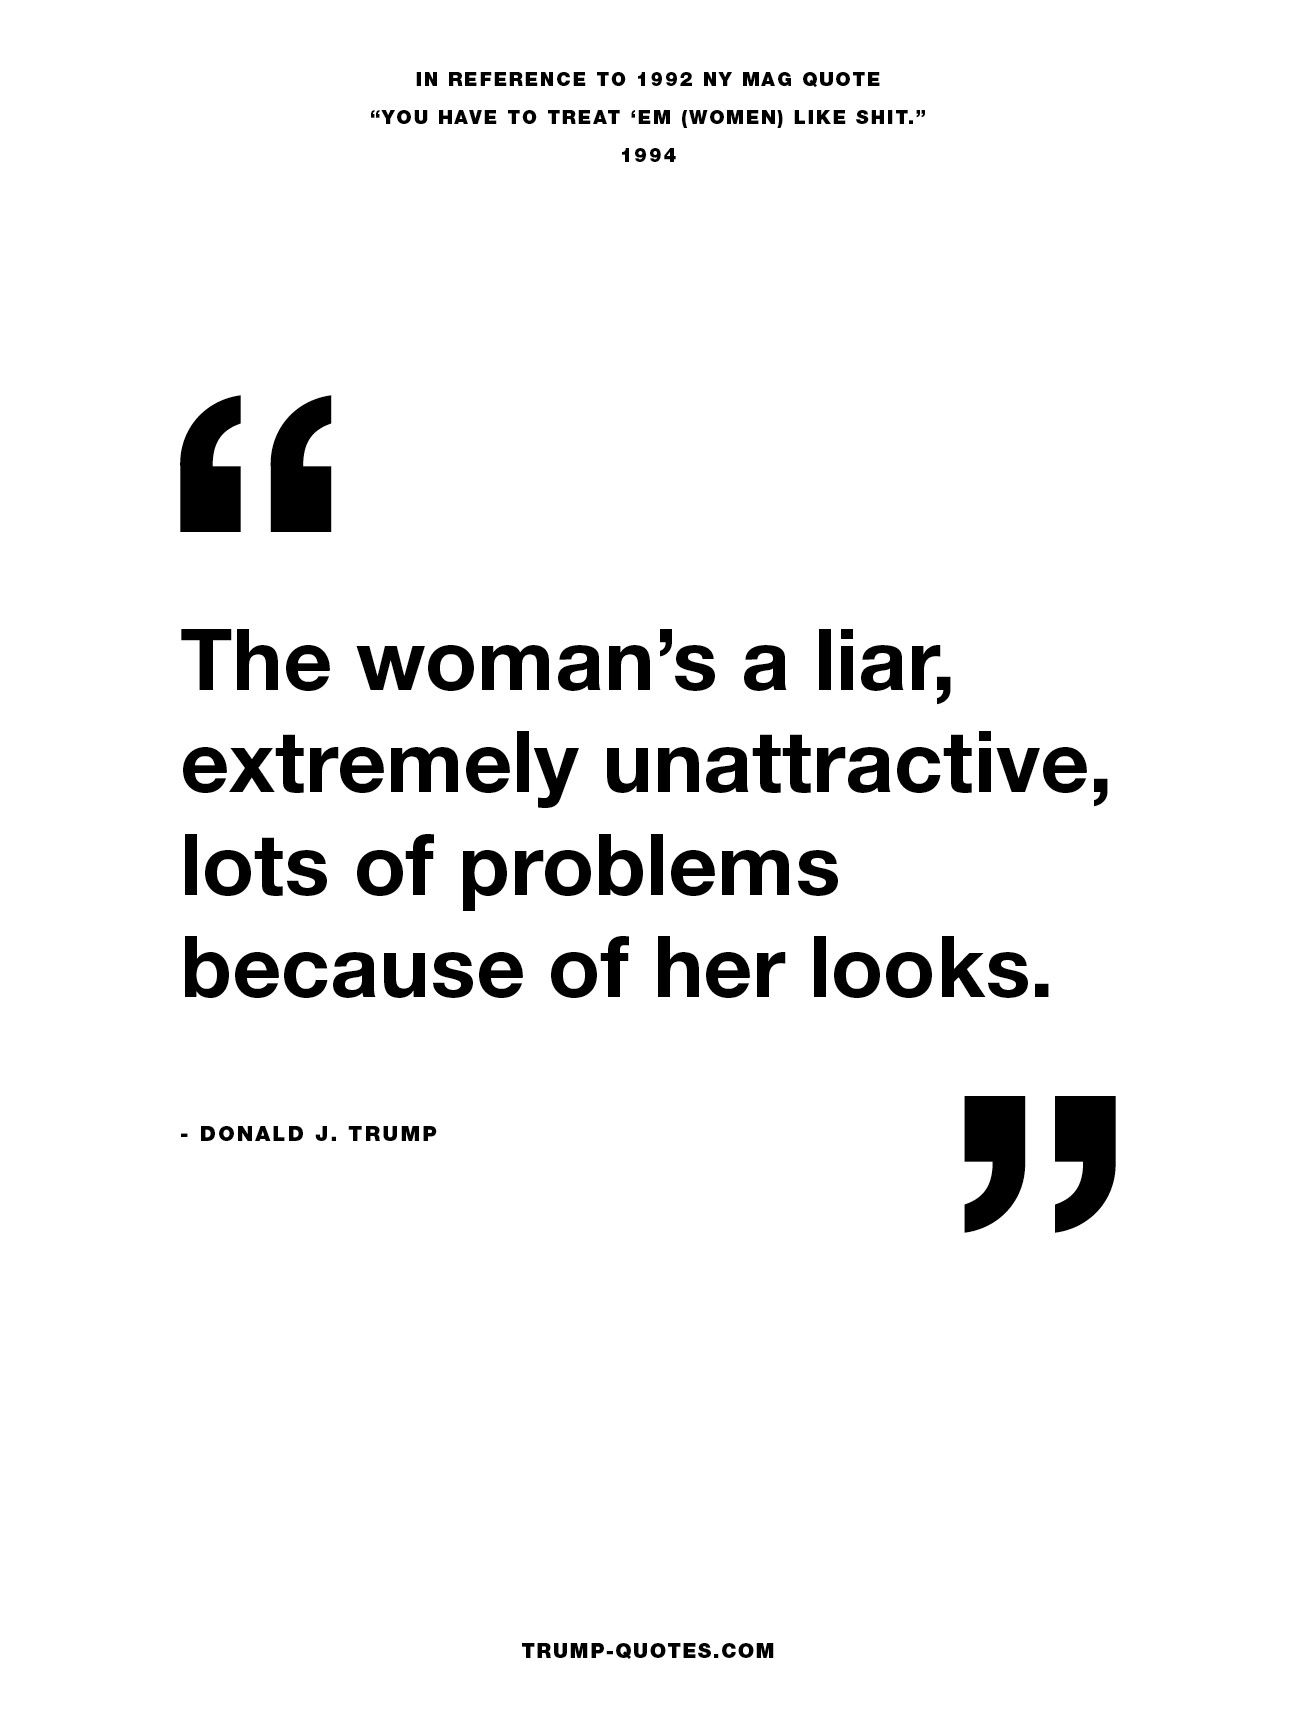 The woman's a liar, extremely  unattractive, lots of problems  because of her looks.